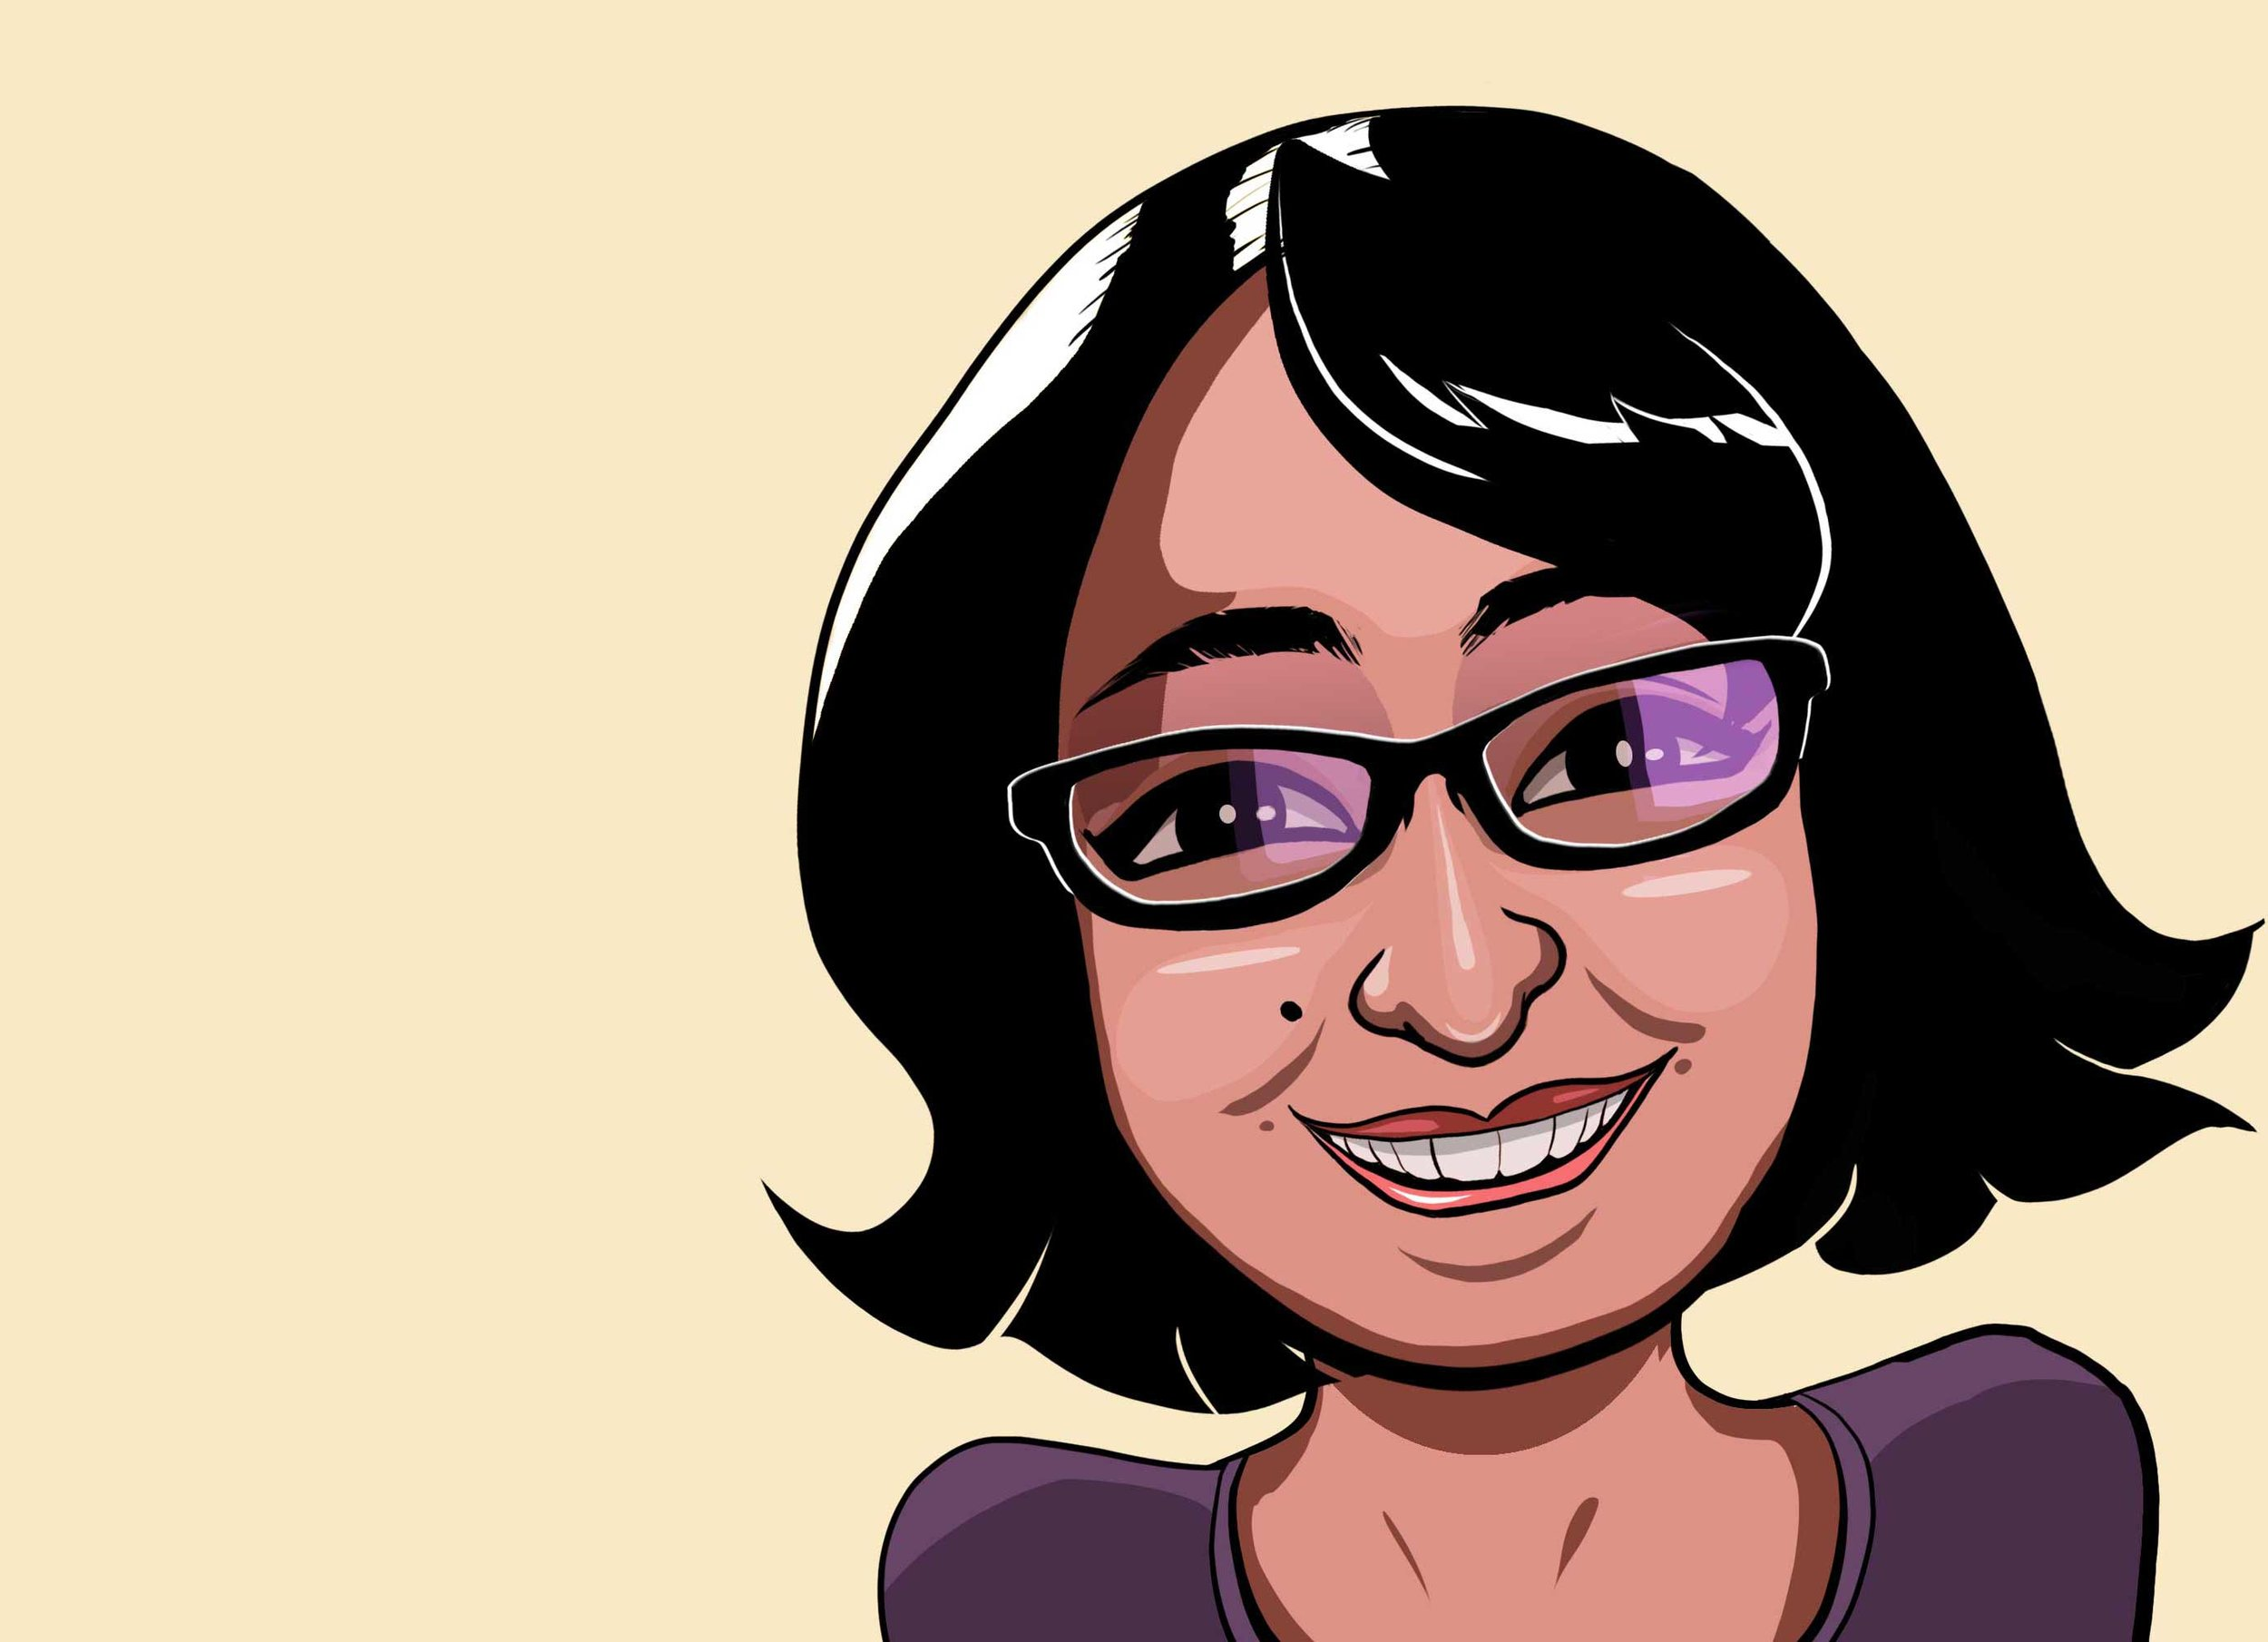 Pleased to meet you. - Sadi is an avid cartoon follower and lover of all things animation. Her skill set includes illustration and animation, and she's a pretty good editor too. Contact her to see what she can do for you!